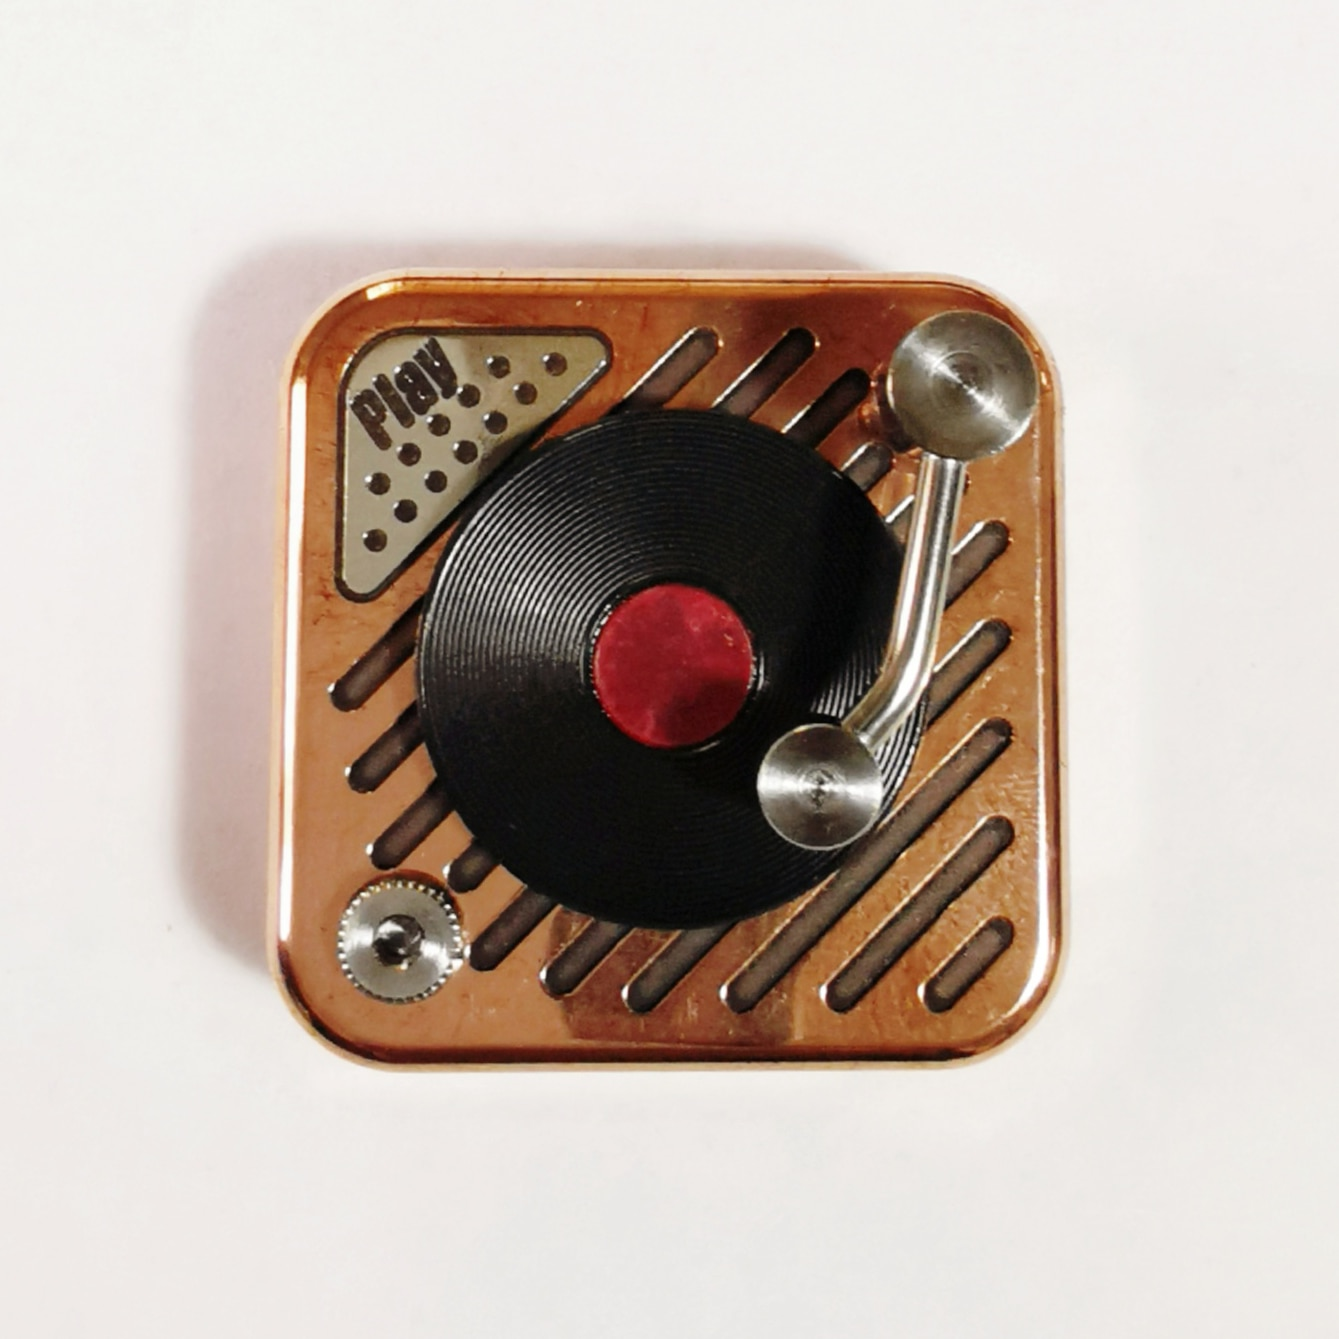 DZ series vinyl Lawrence PLAY copper brass decompression table fingertips gyro toys desk toy fidget toy fidget toys for anxiety enlarge